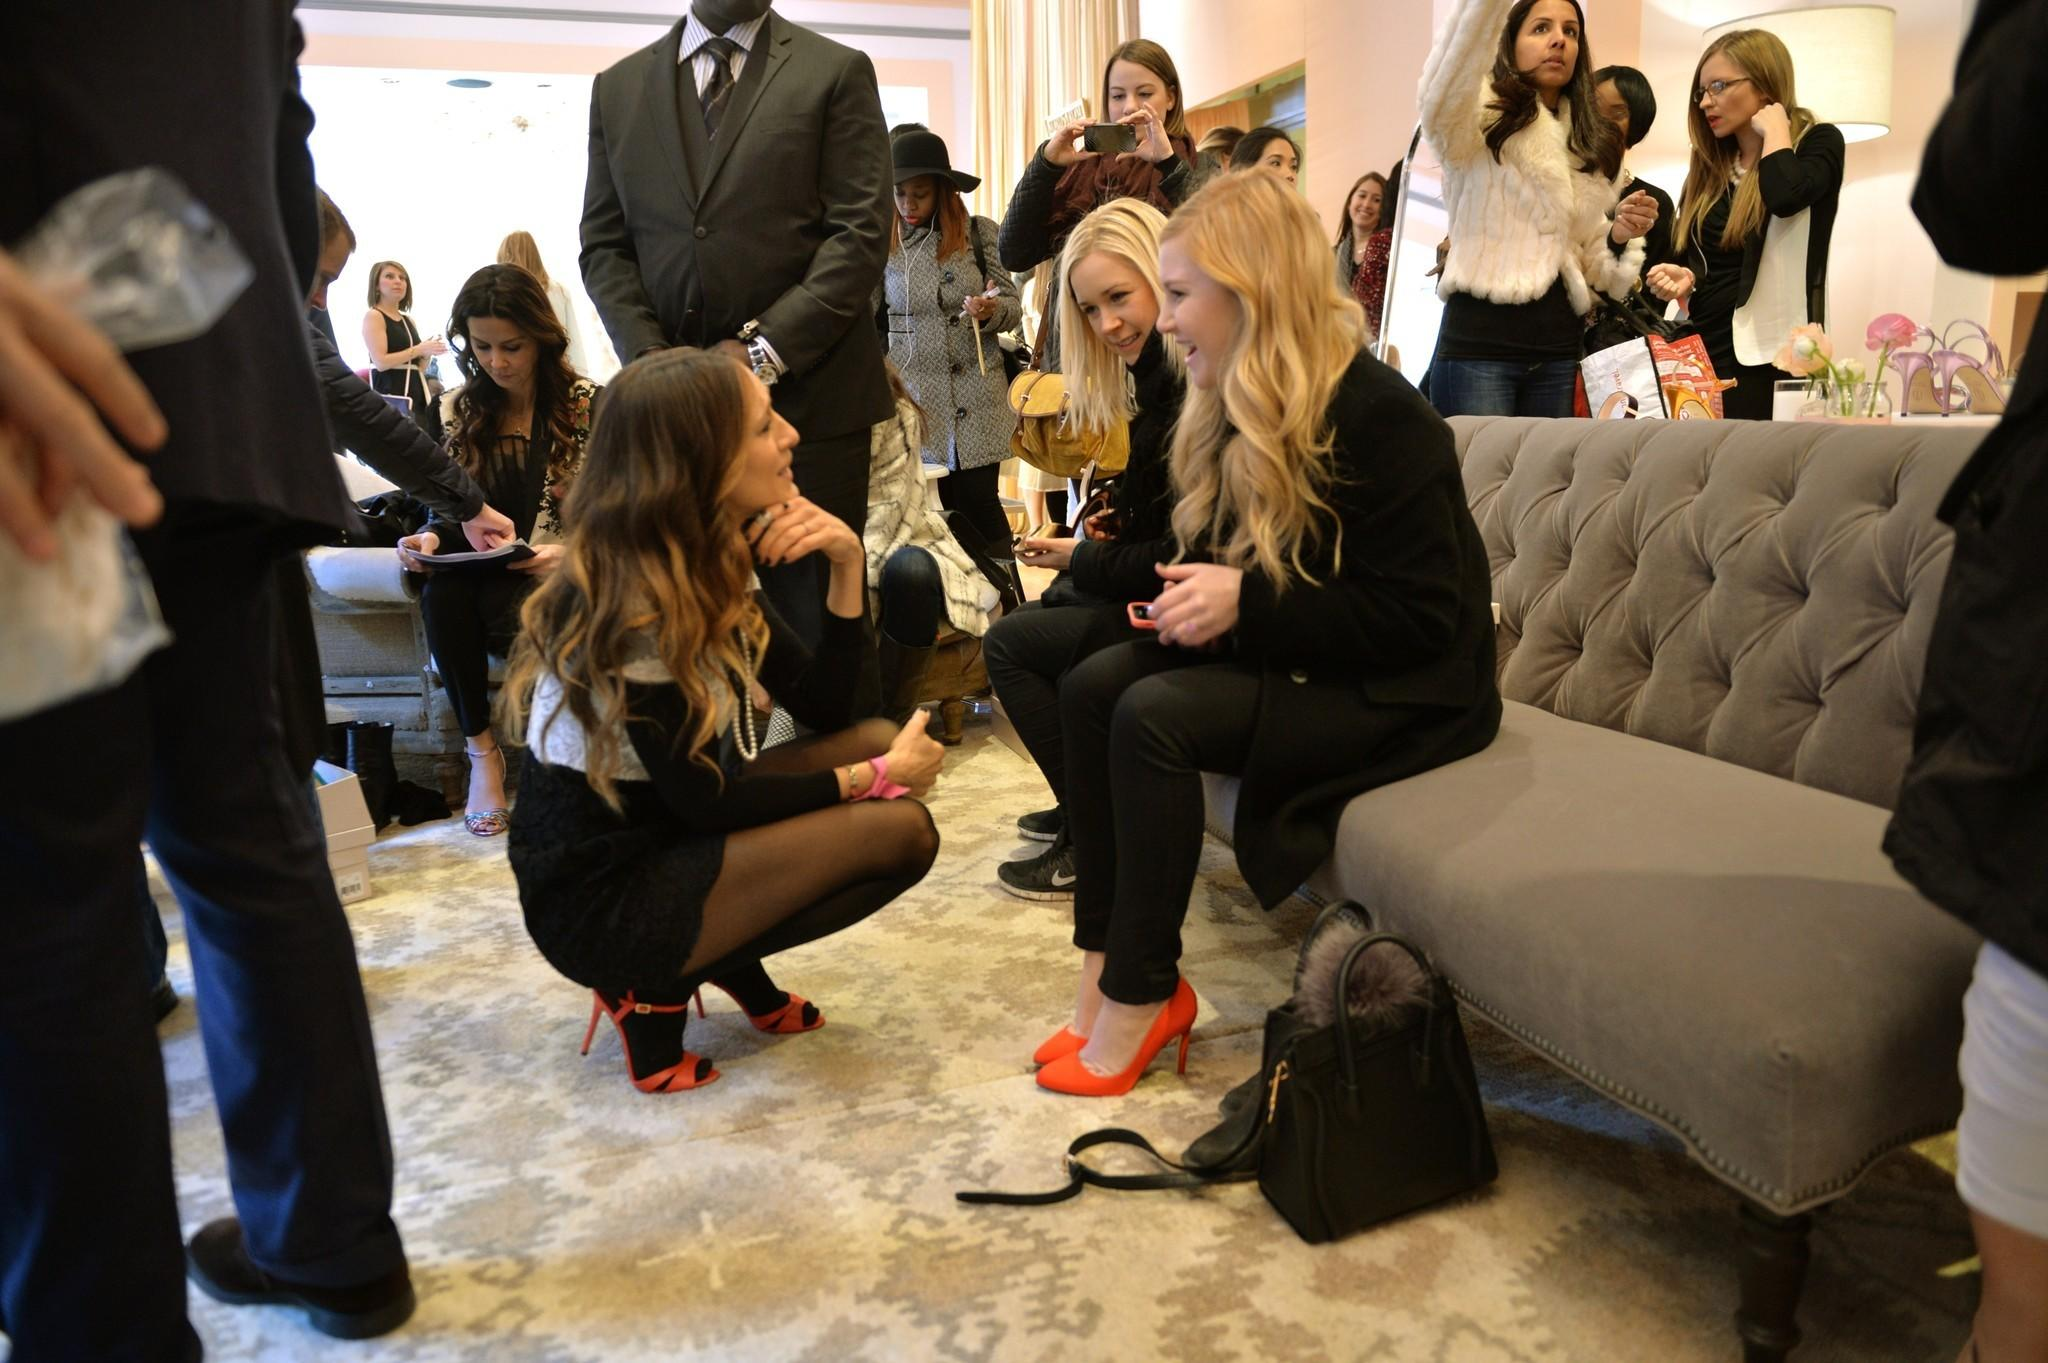 Sarah Jessica Parker introduces her new shoe collection SJP at the New York City Nordstrom pop-up shop in late February.